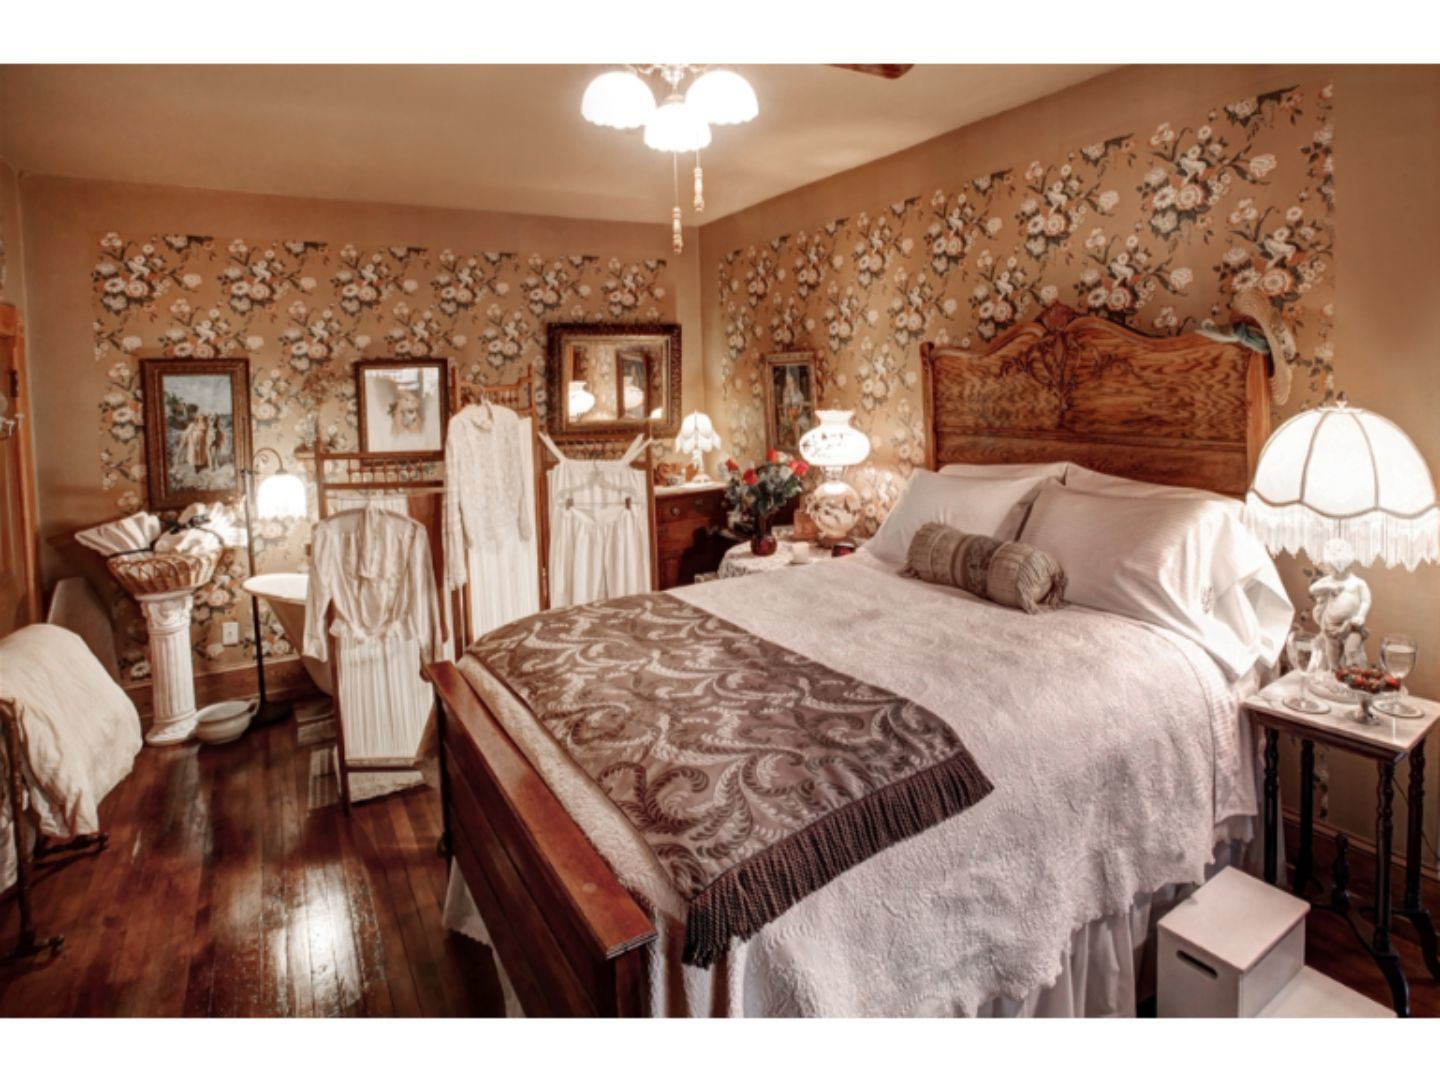 A bedroom with a large bed in a room at The Queen, A Victorian Bed and Breakfast.